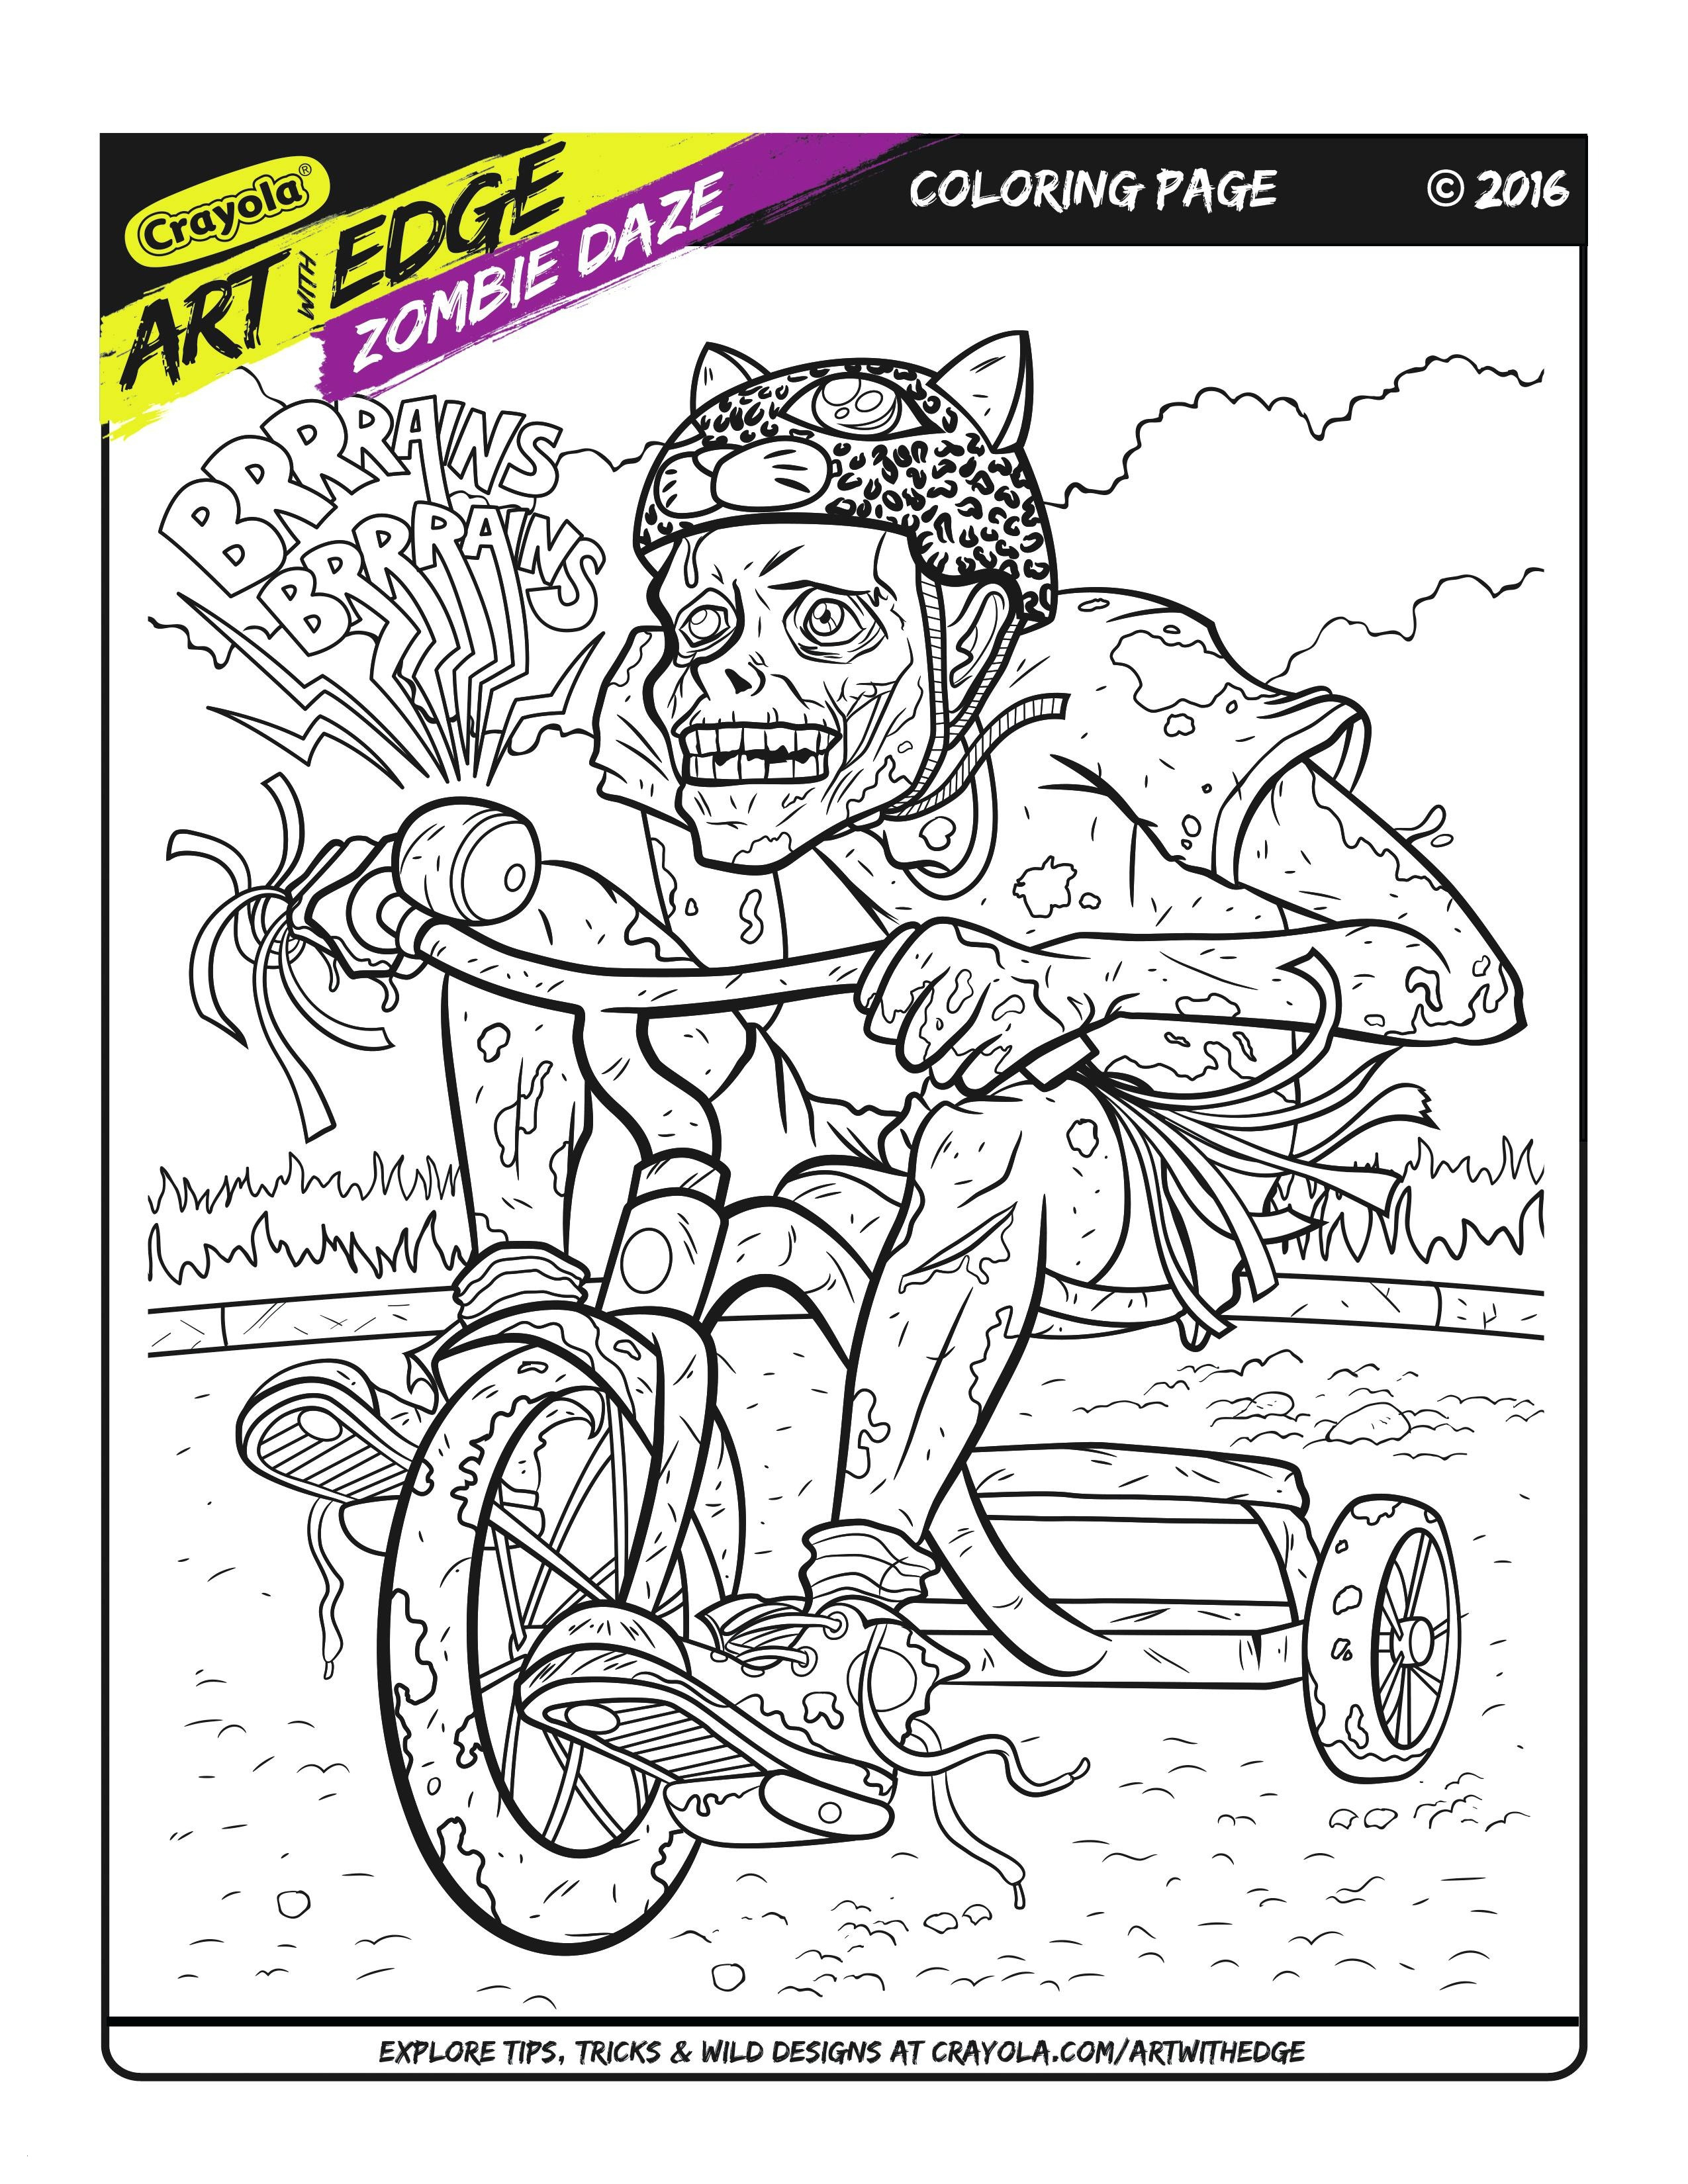 Puerto Rico Coloring Pages  Collection 19a - Save it to your computer